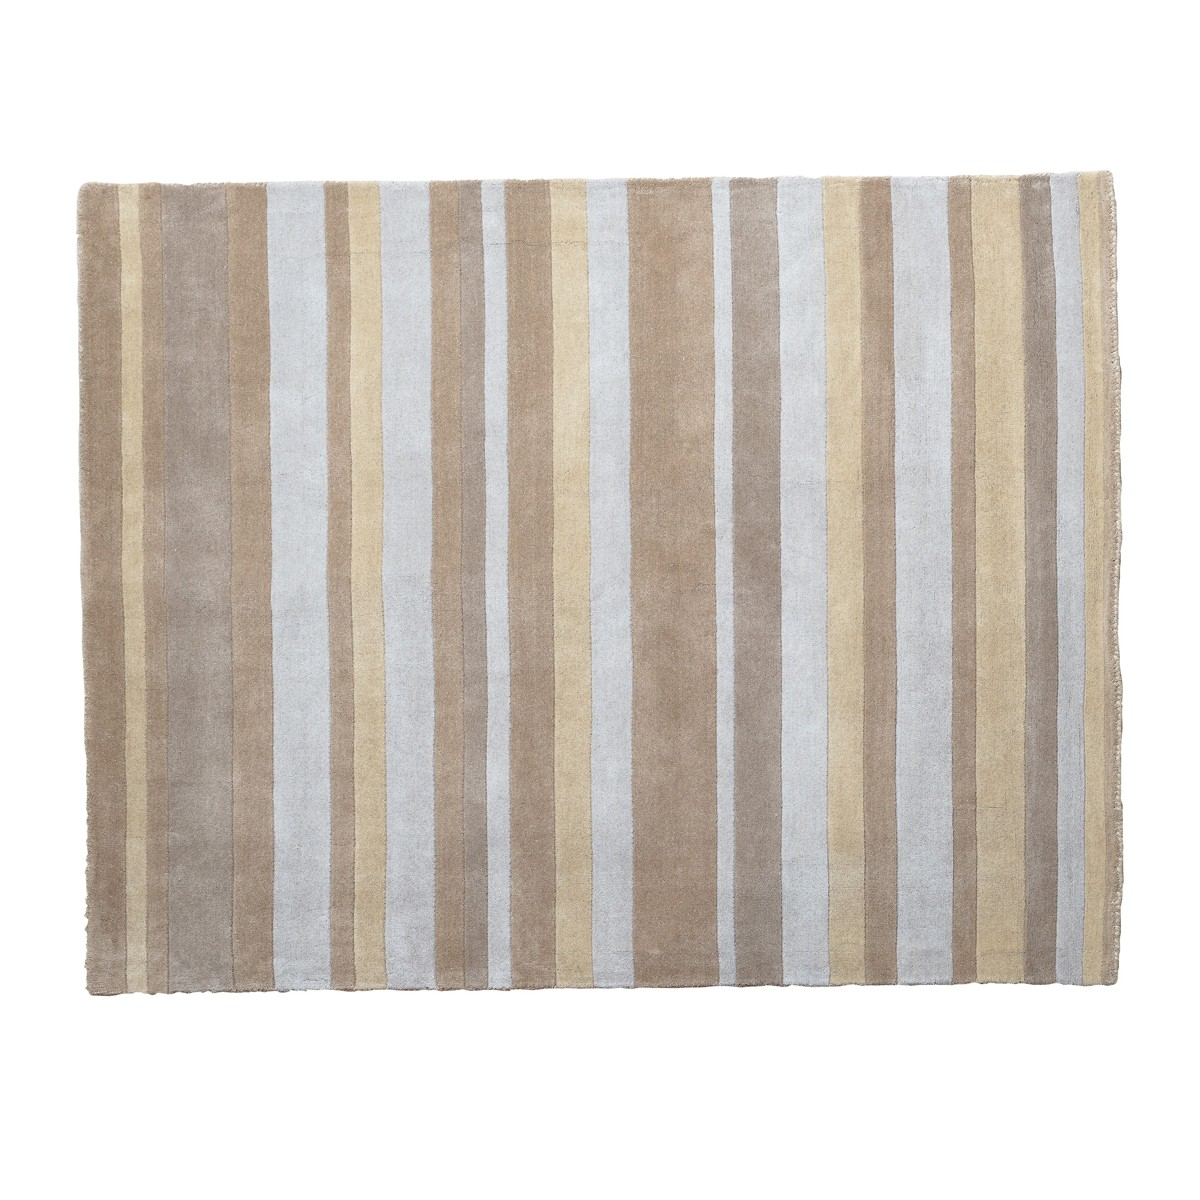 Rose -  Multi stripe  Design Rug in Neutrals